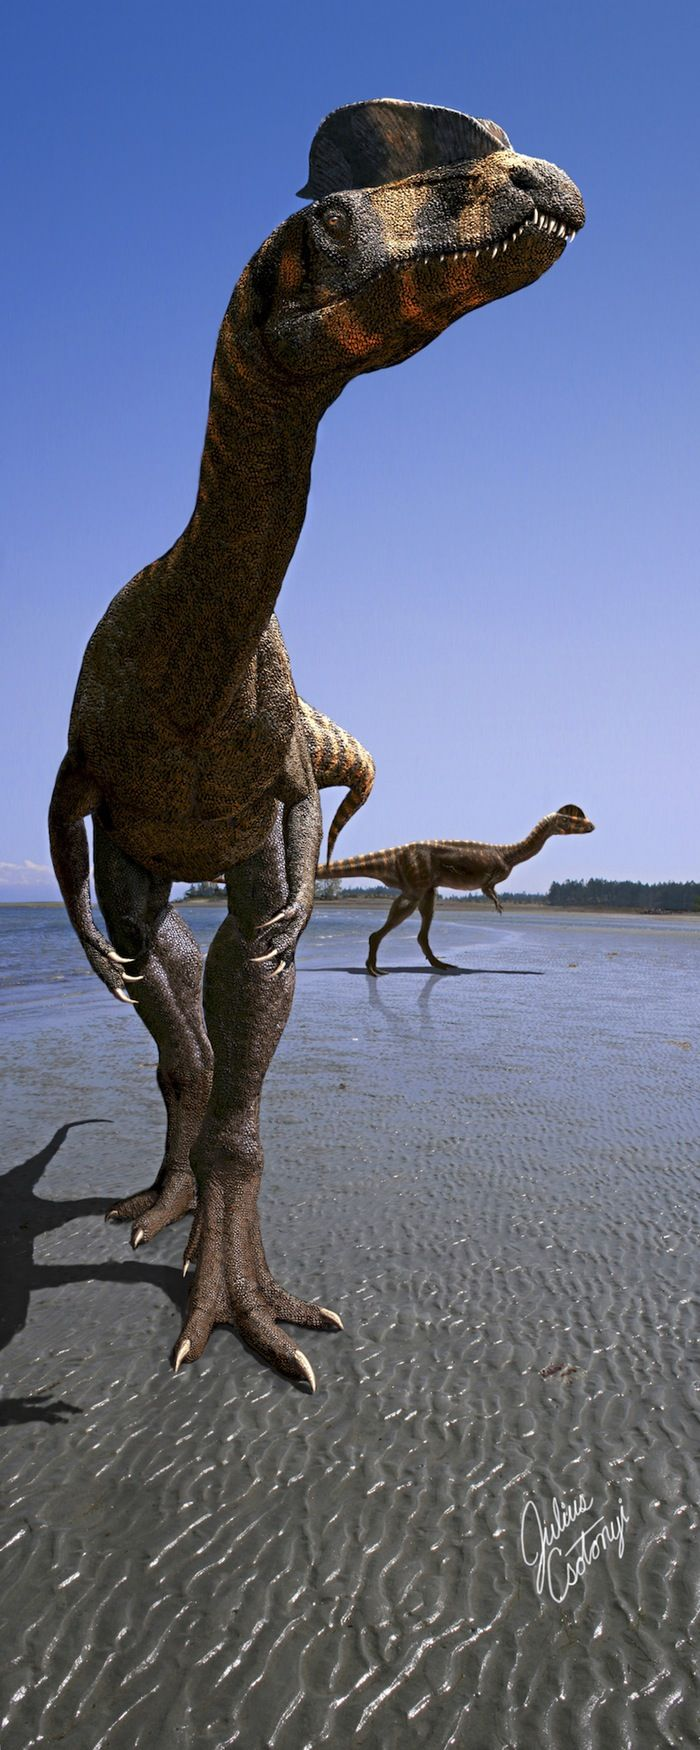 Large Theropod dinosaurs [eg:Dilophosaurus] had bumps,knobs & crests on their heads